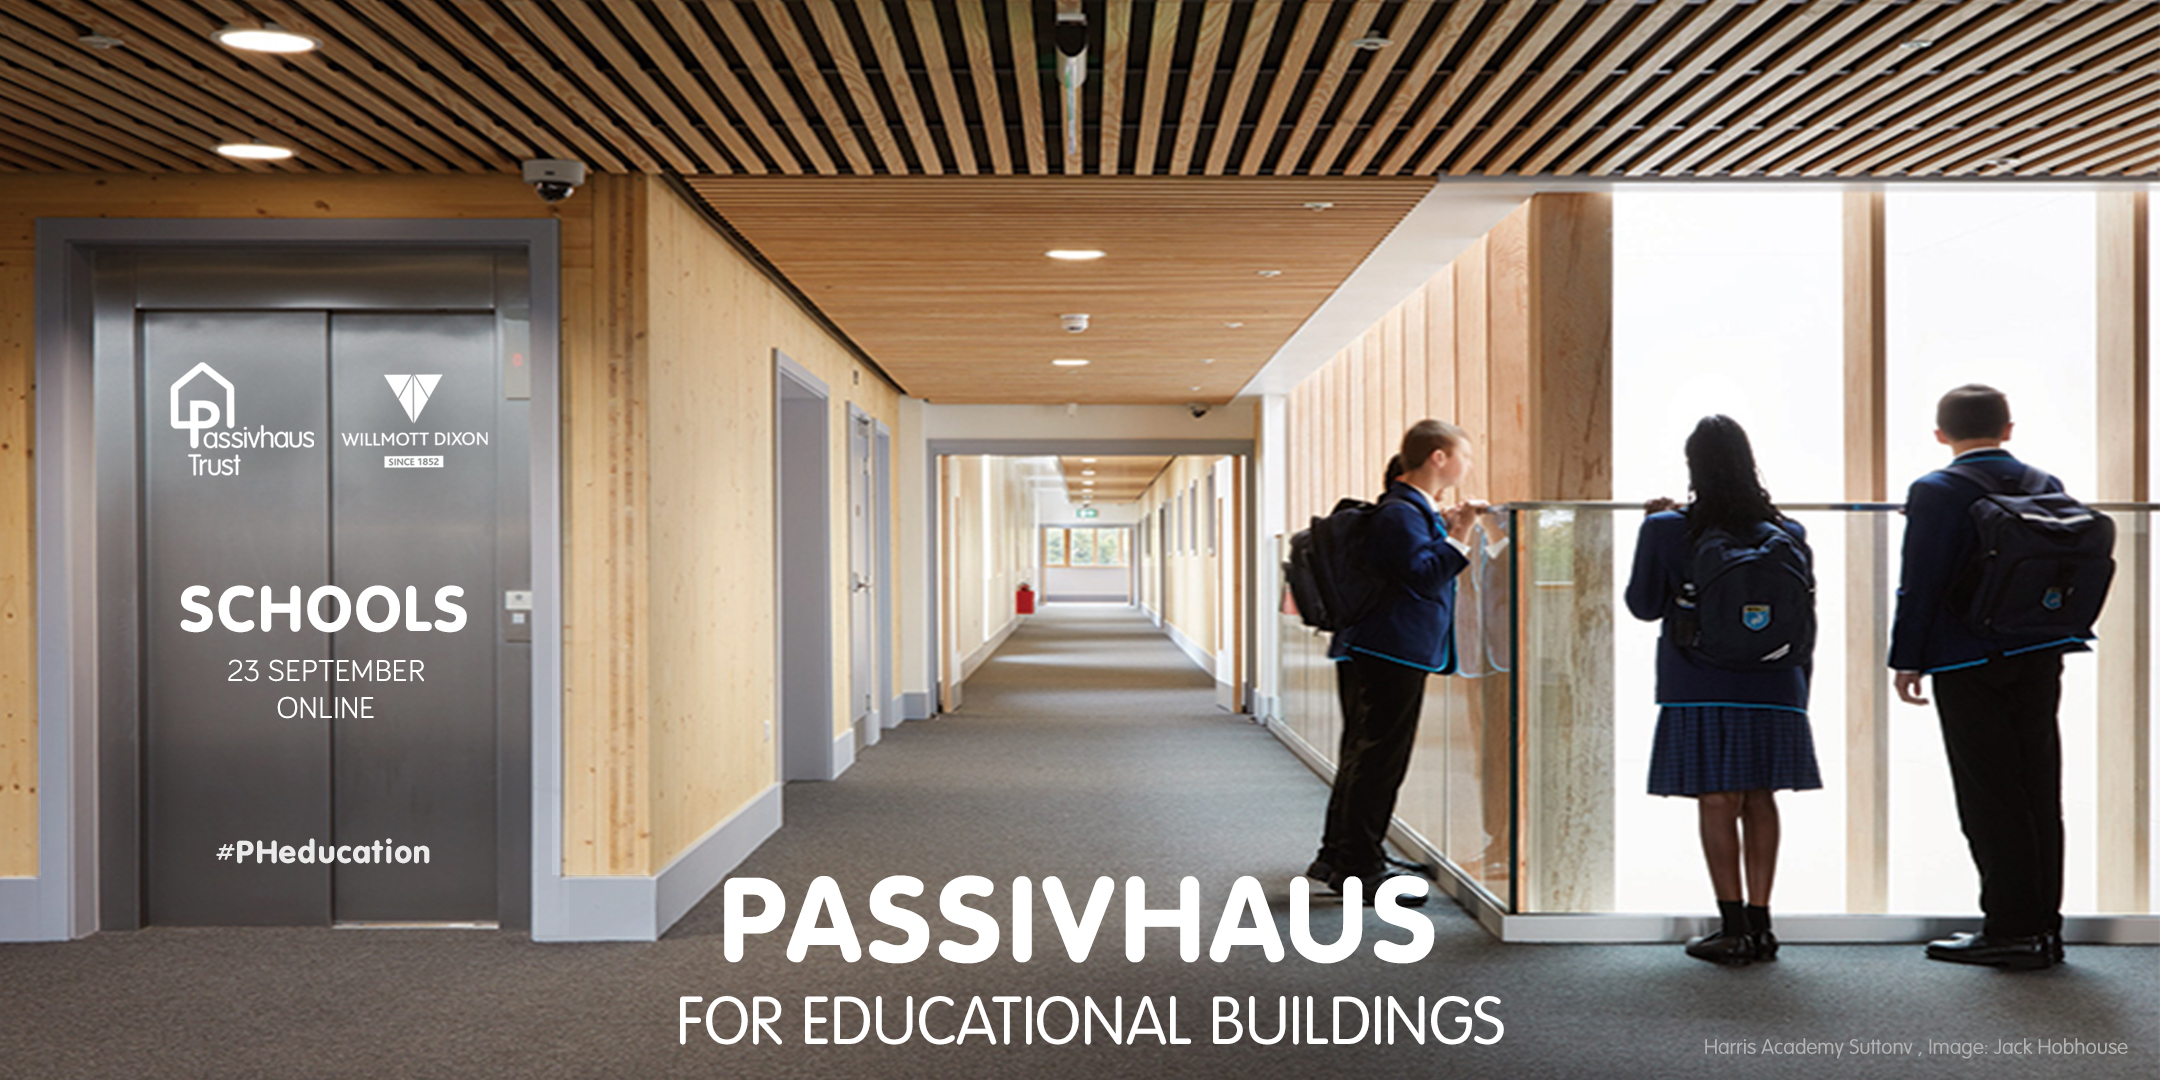 Passivhaus for Educational Buildings: Schools - 23 September 2020